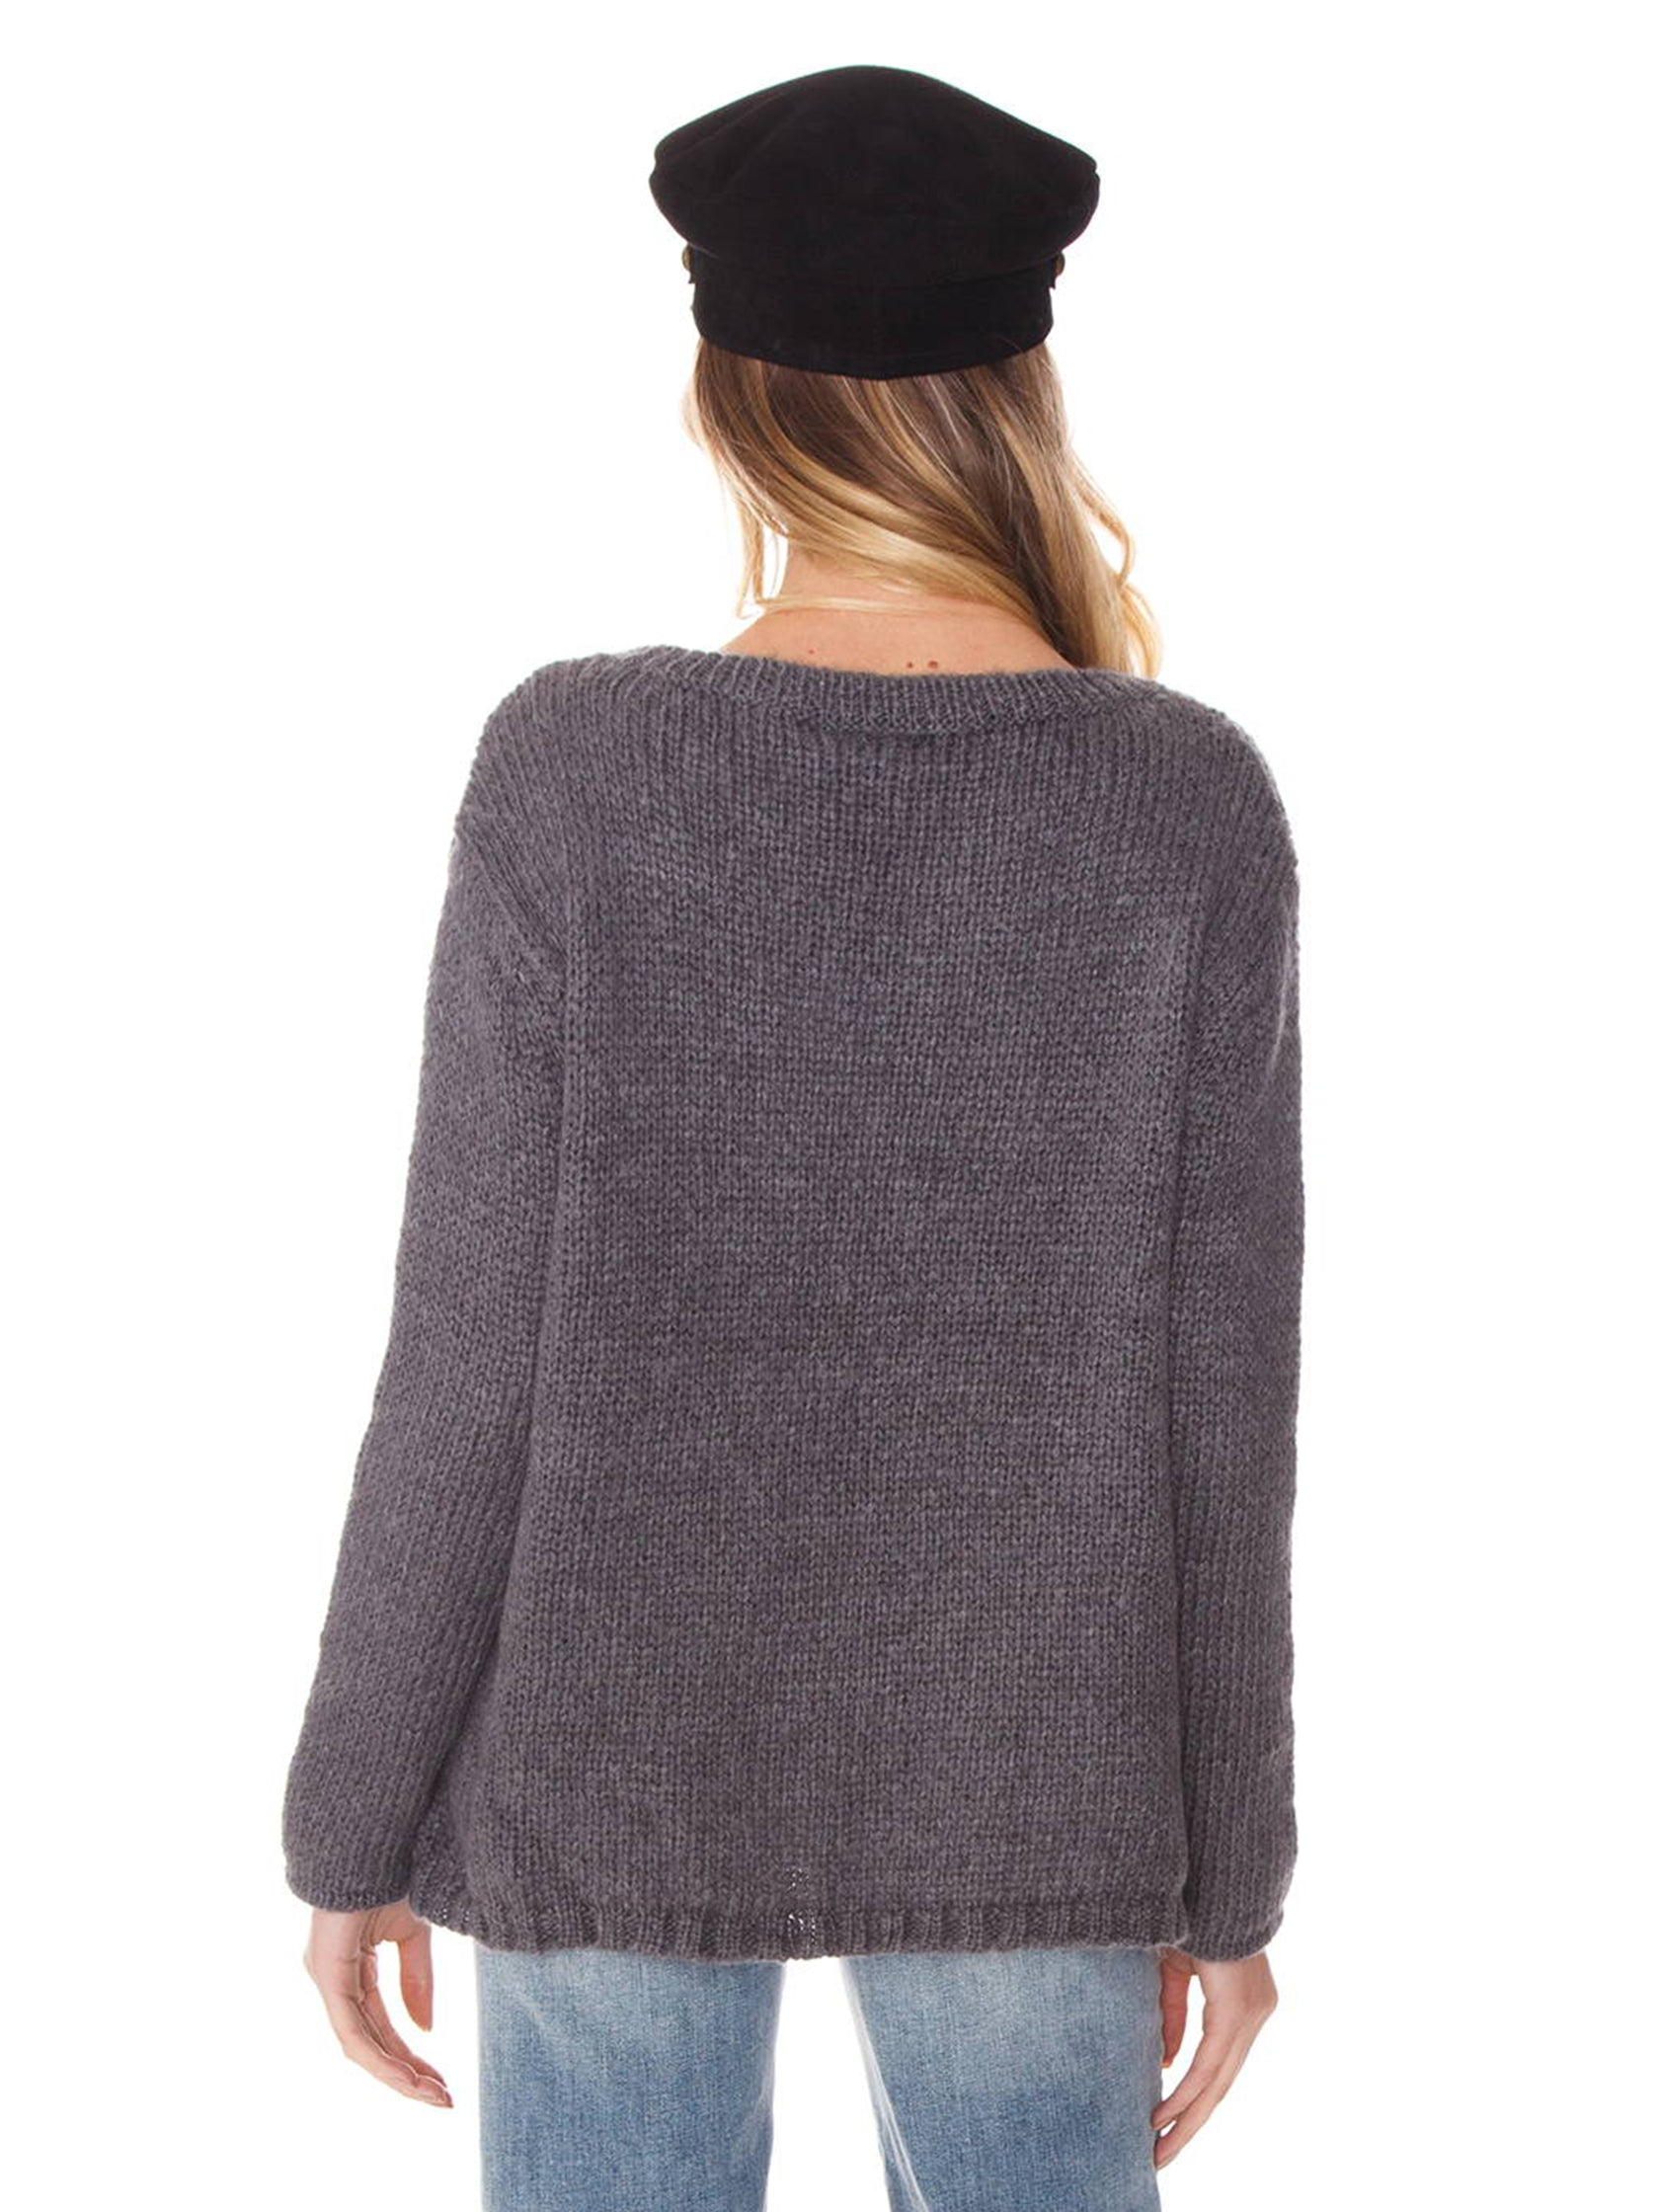 Women outfit in a sweater rental from Wooden Ships called Bolt Crewneck